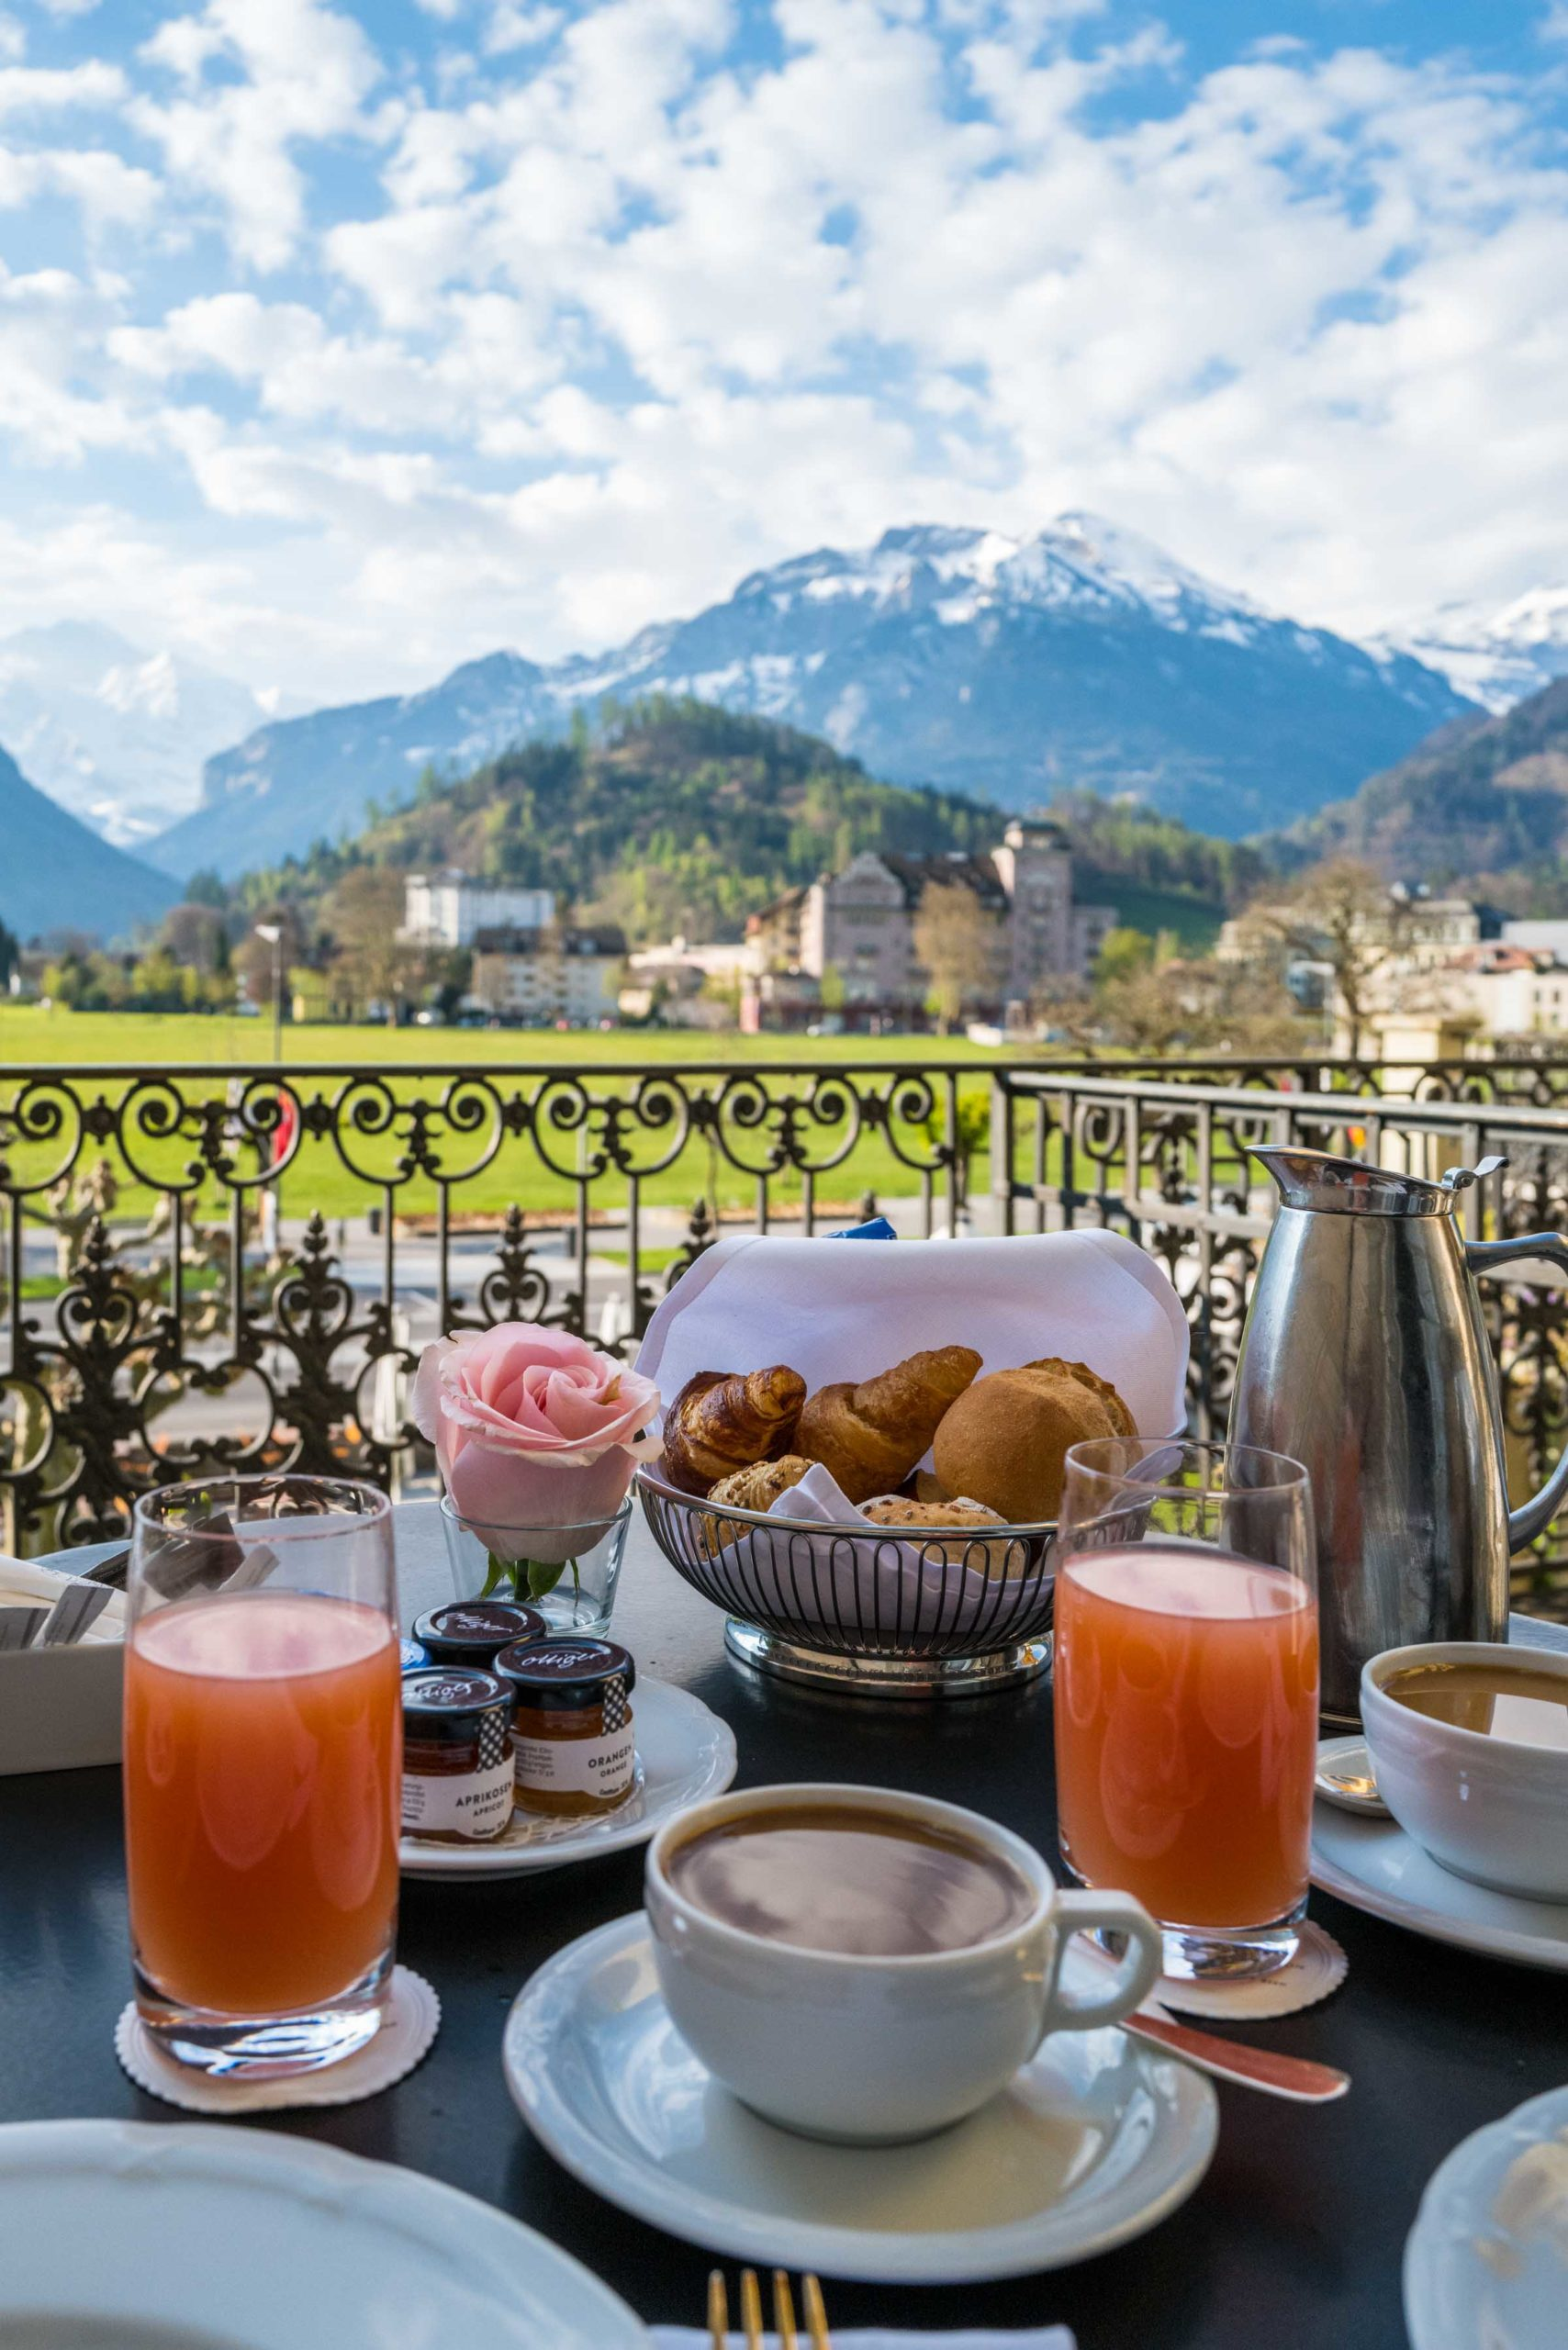 Order breakfast on the terrace overlooking the Jungfrau mountain at the Victoria-Jungfrau hotel in Switzerland, #breakfast #swiss #hotel #switzerland #mountains #luxury #bunch